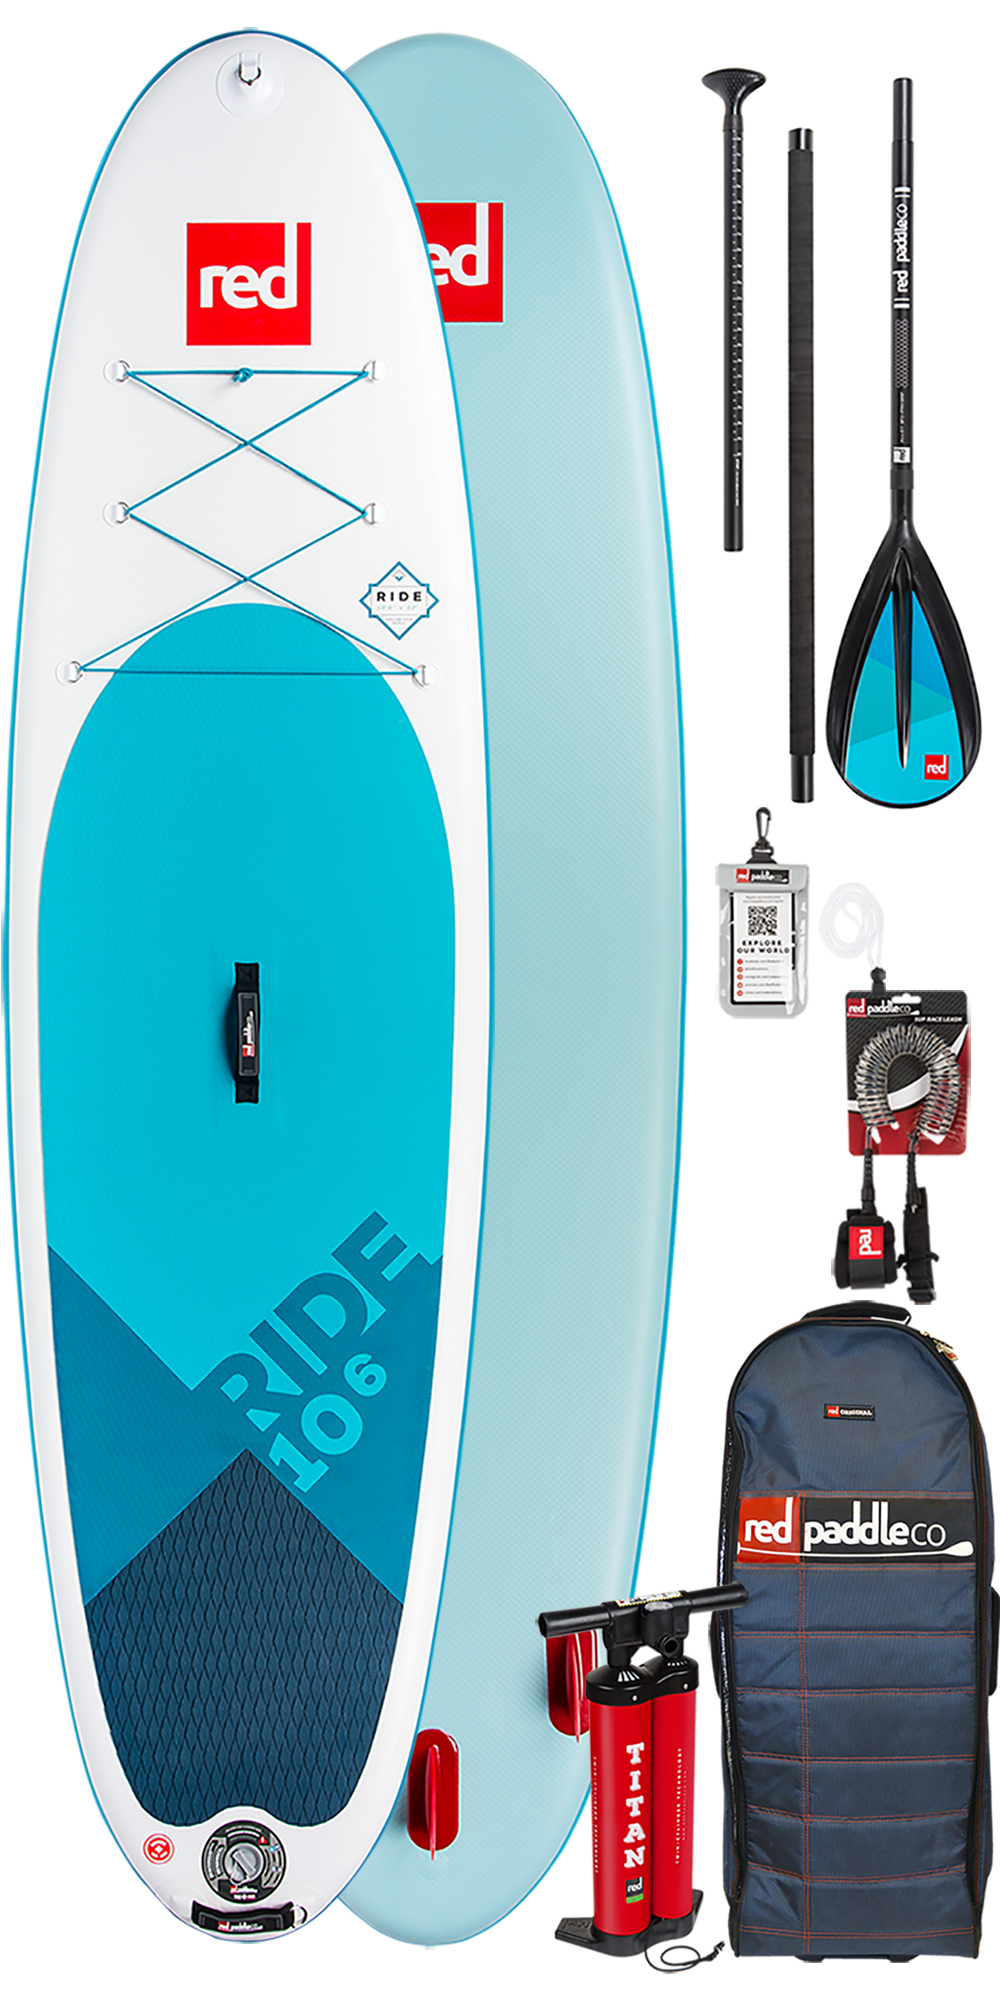 083d9e86f 2019 Red Paddle Co Ride 10'6 Oppblåsbare Stå opp Paddle Board Package